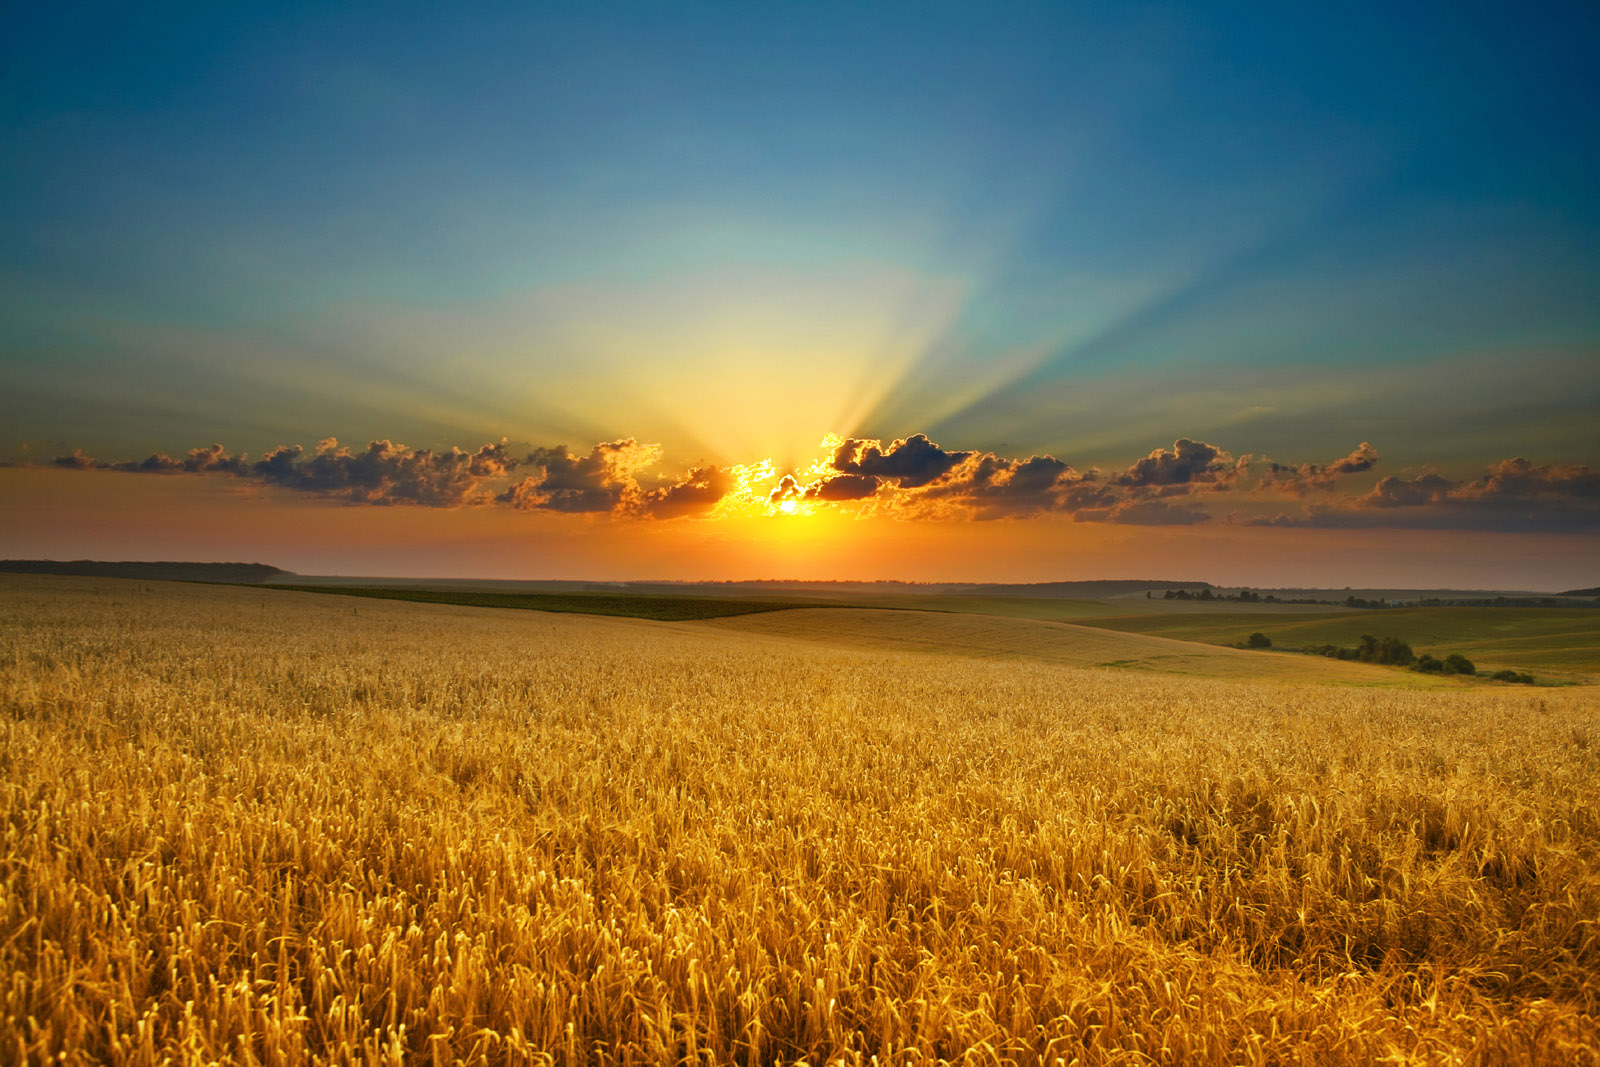 HD wheat fields under the sun 10004